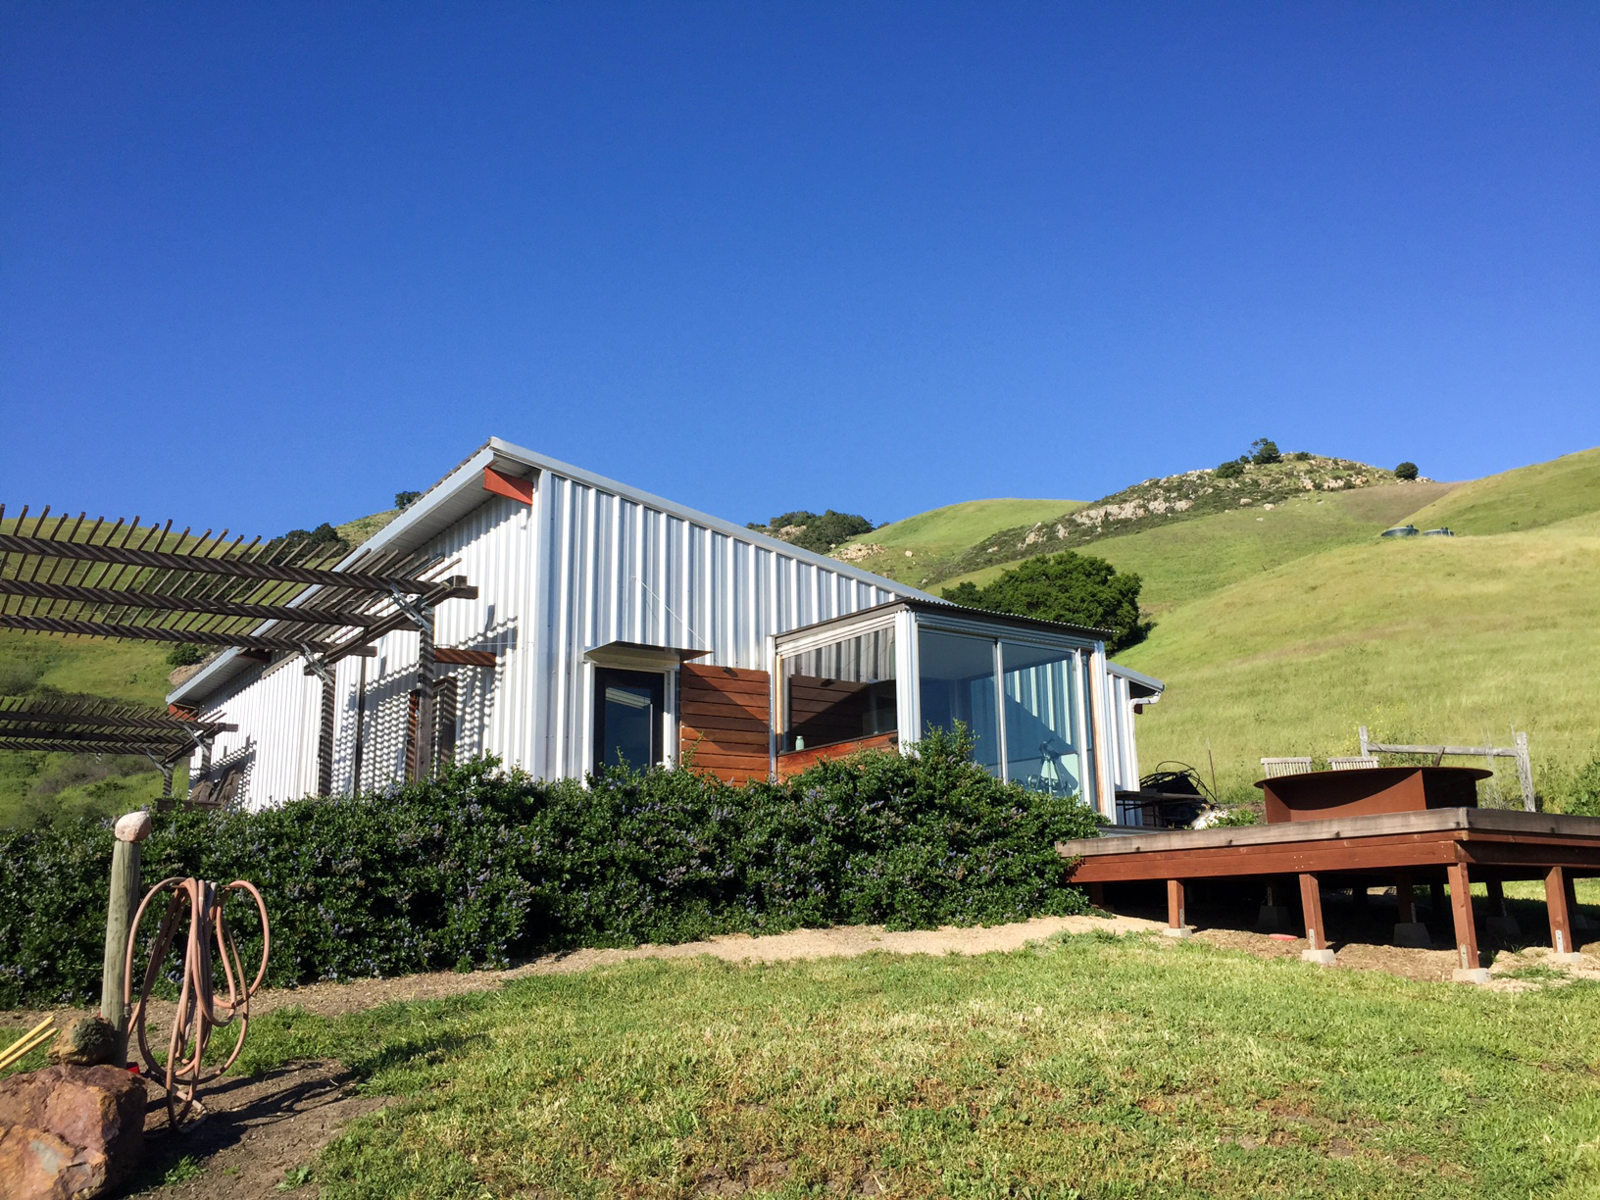 Main barn and side deck with fire pit  Barking Dog Ranch by kitHAUS